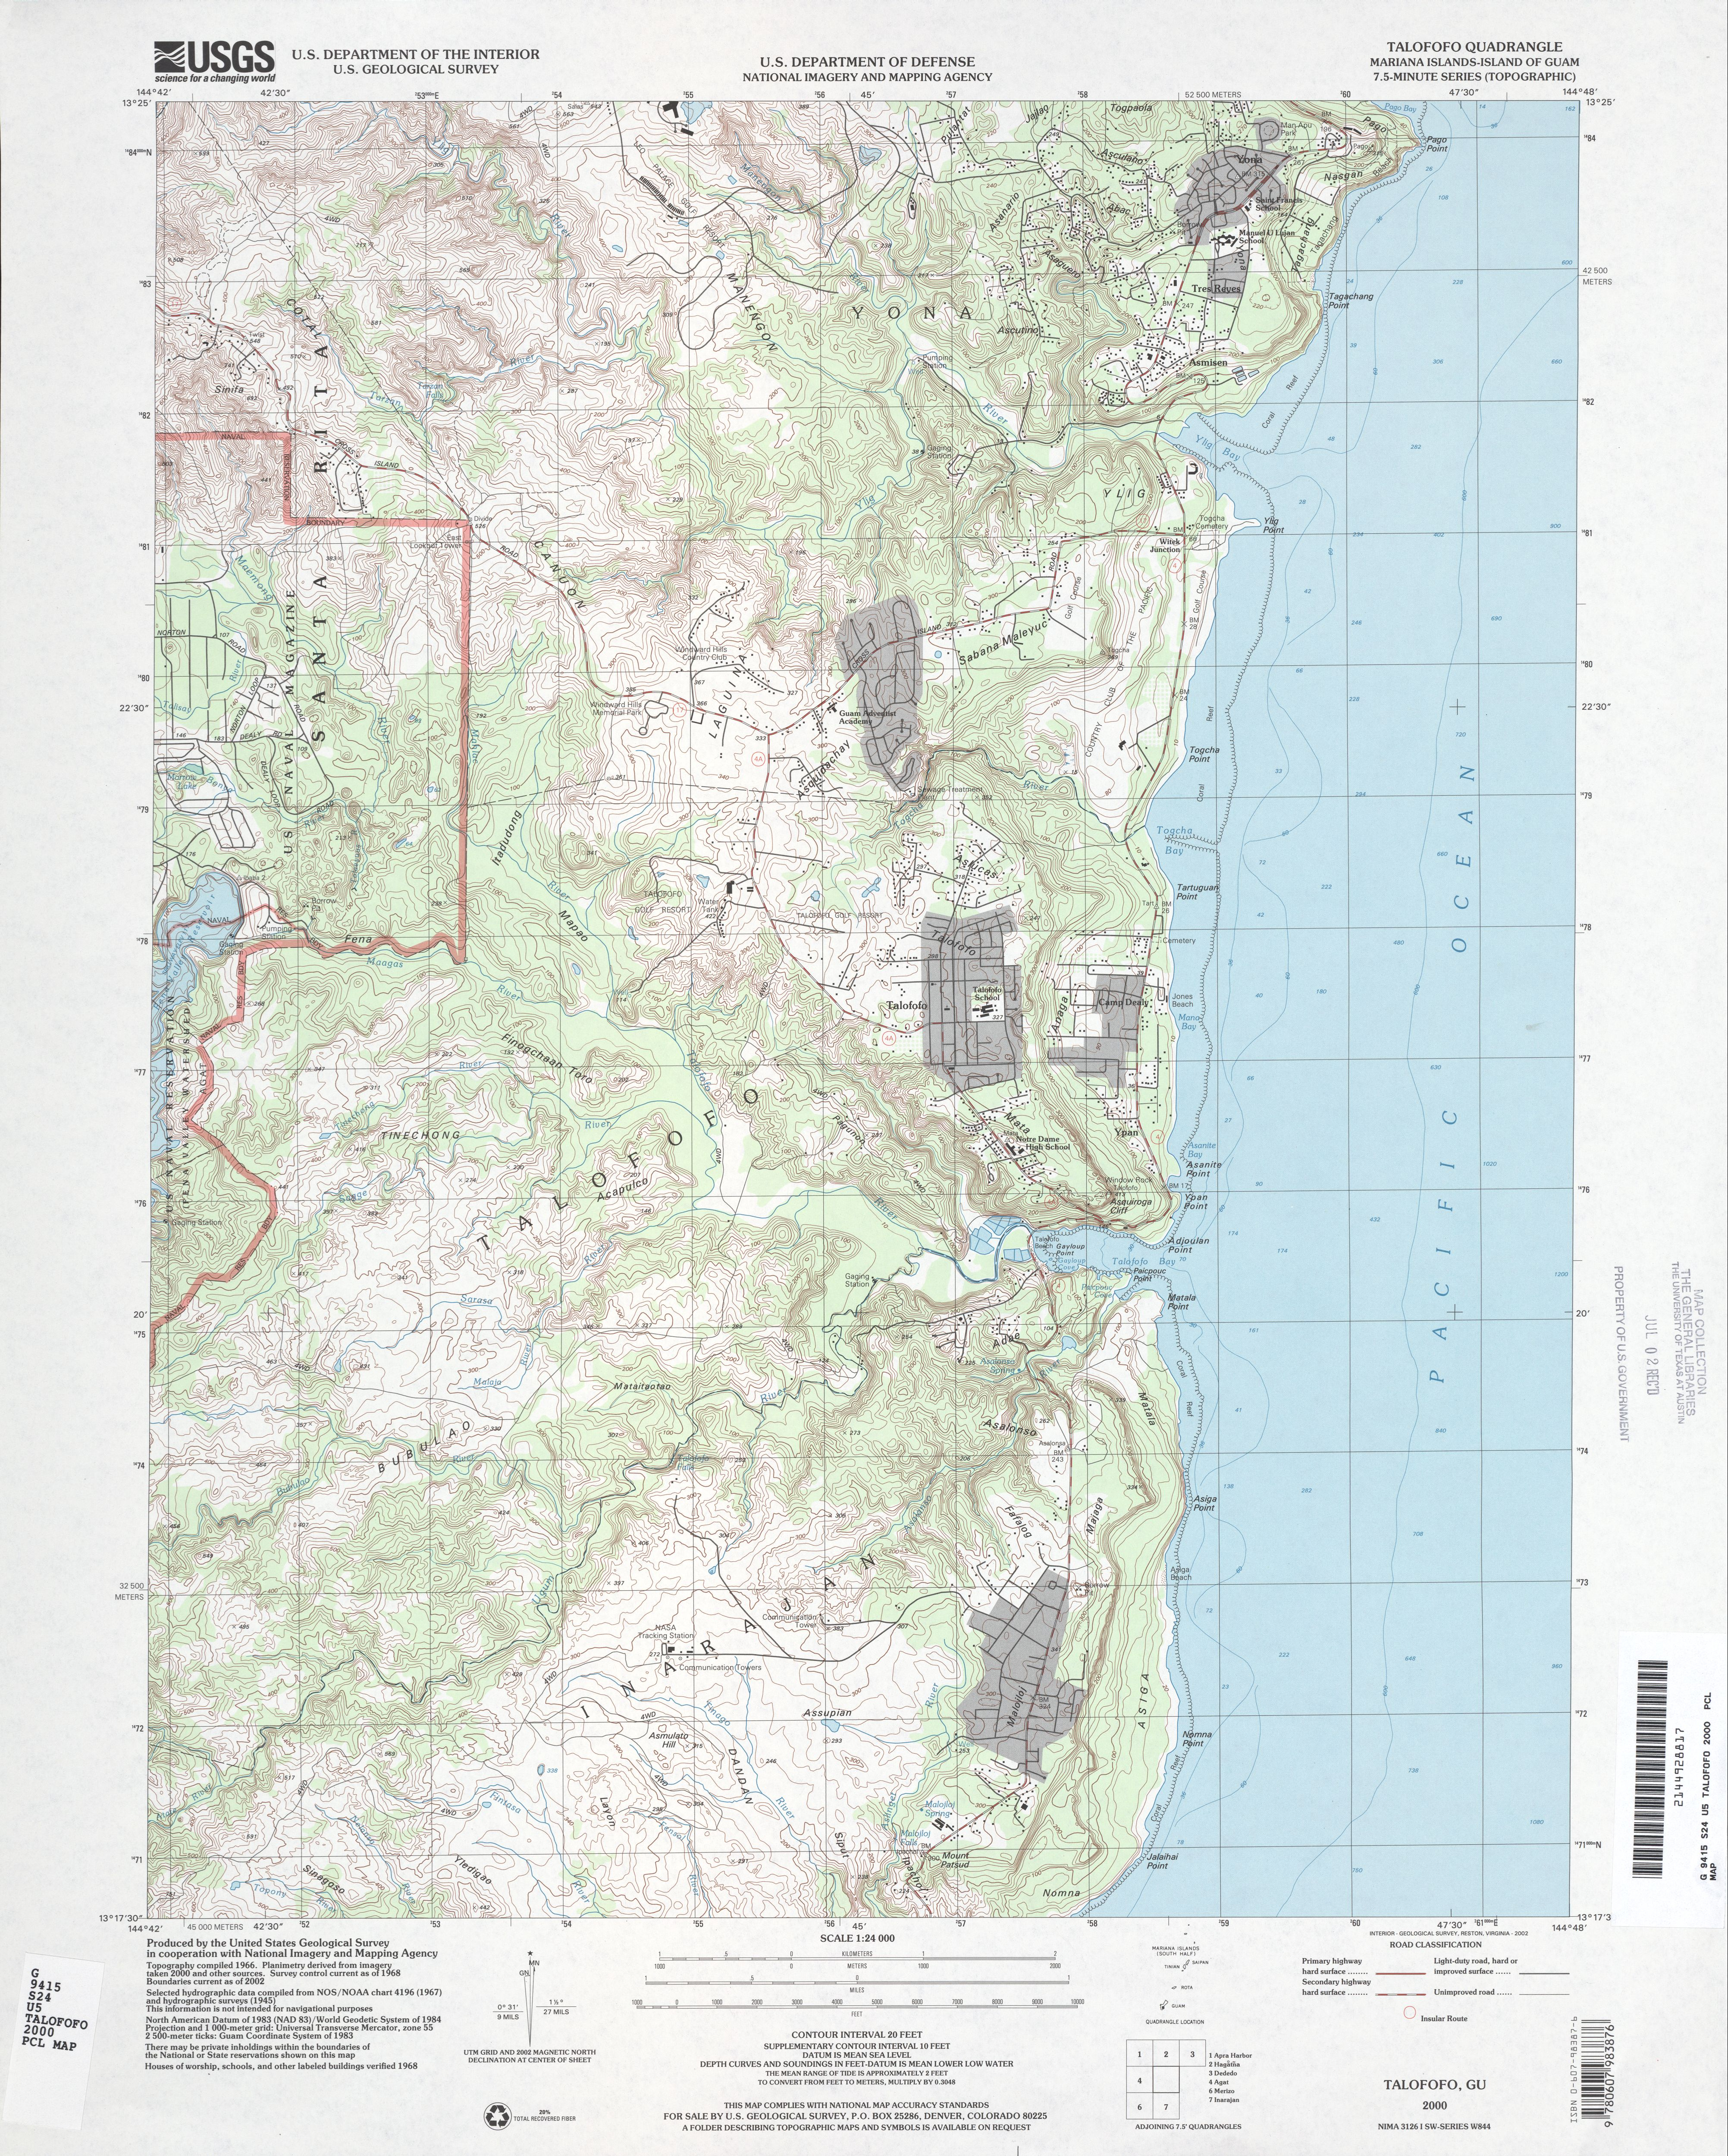 Guam Maps PerryCastañeda Map Collection UT Library Online - Us geological survey topographic maps for sale